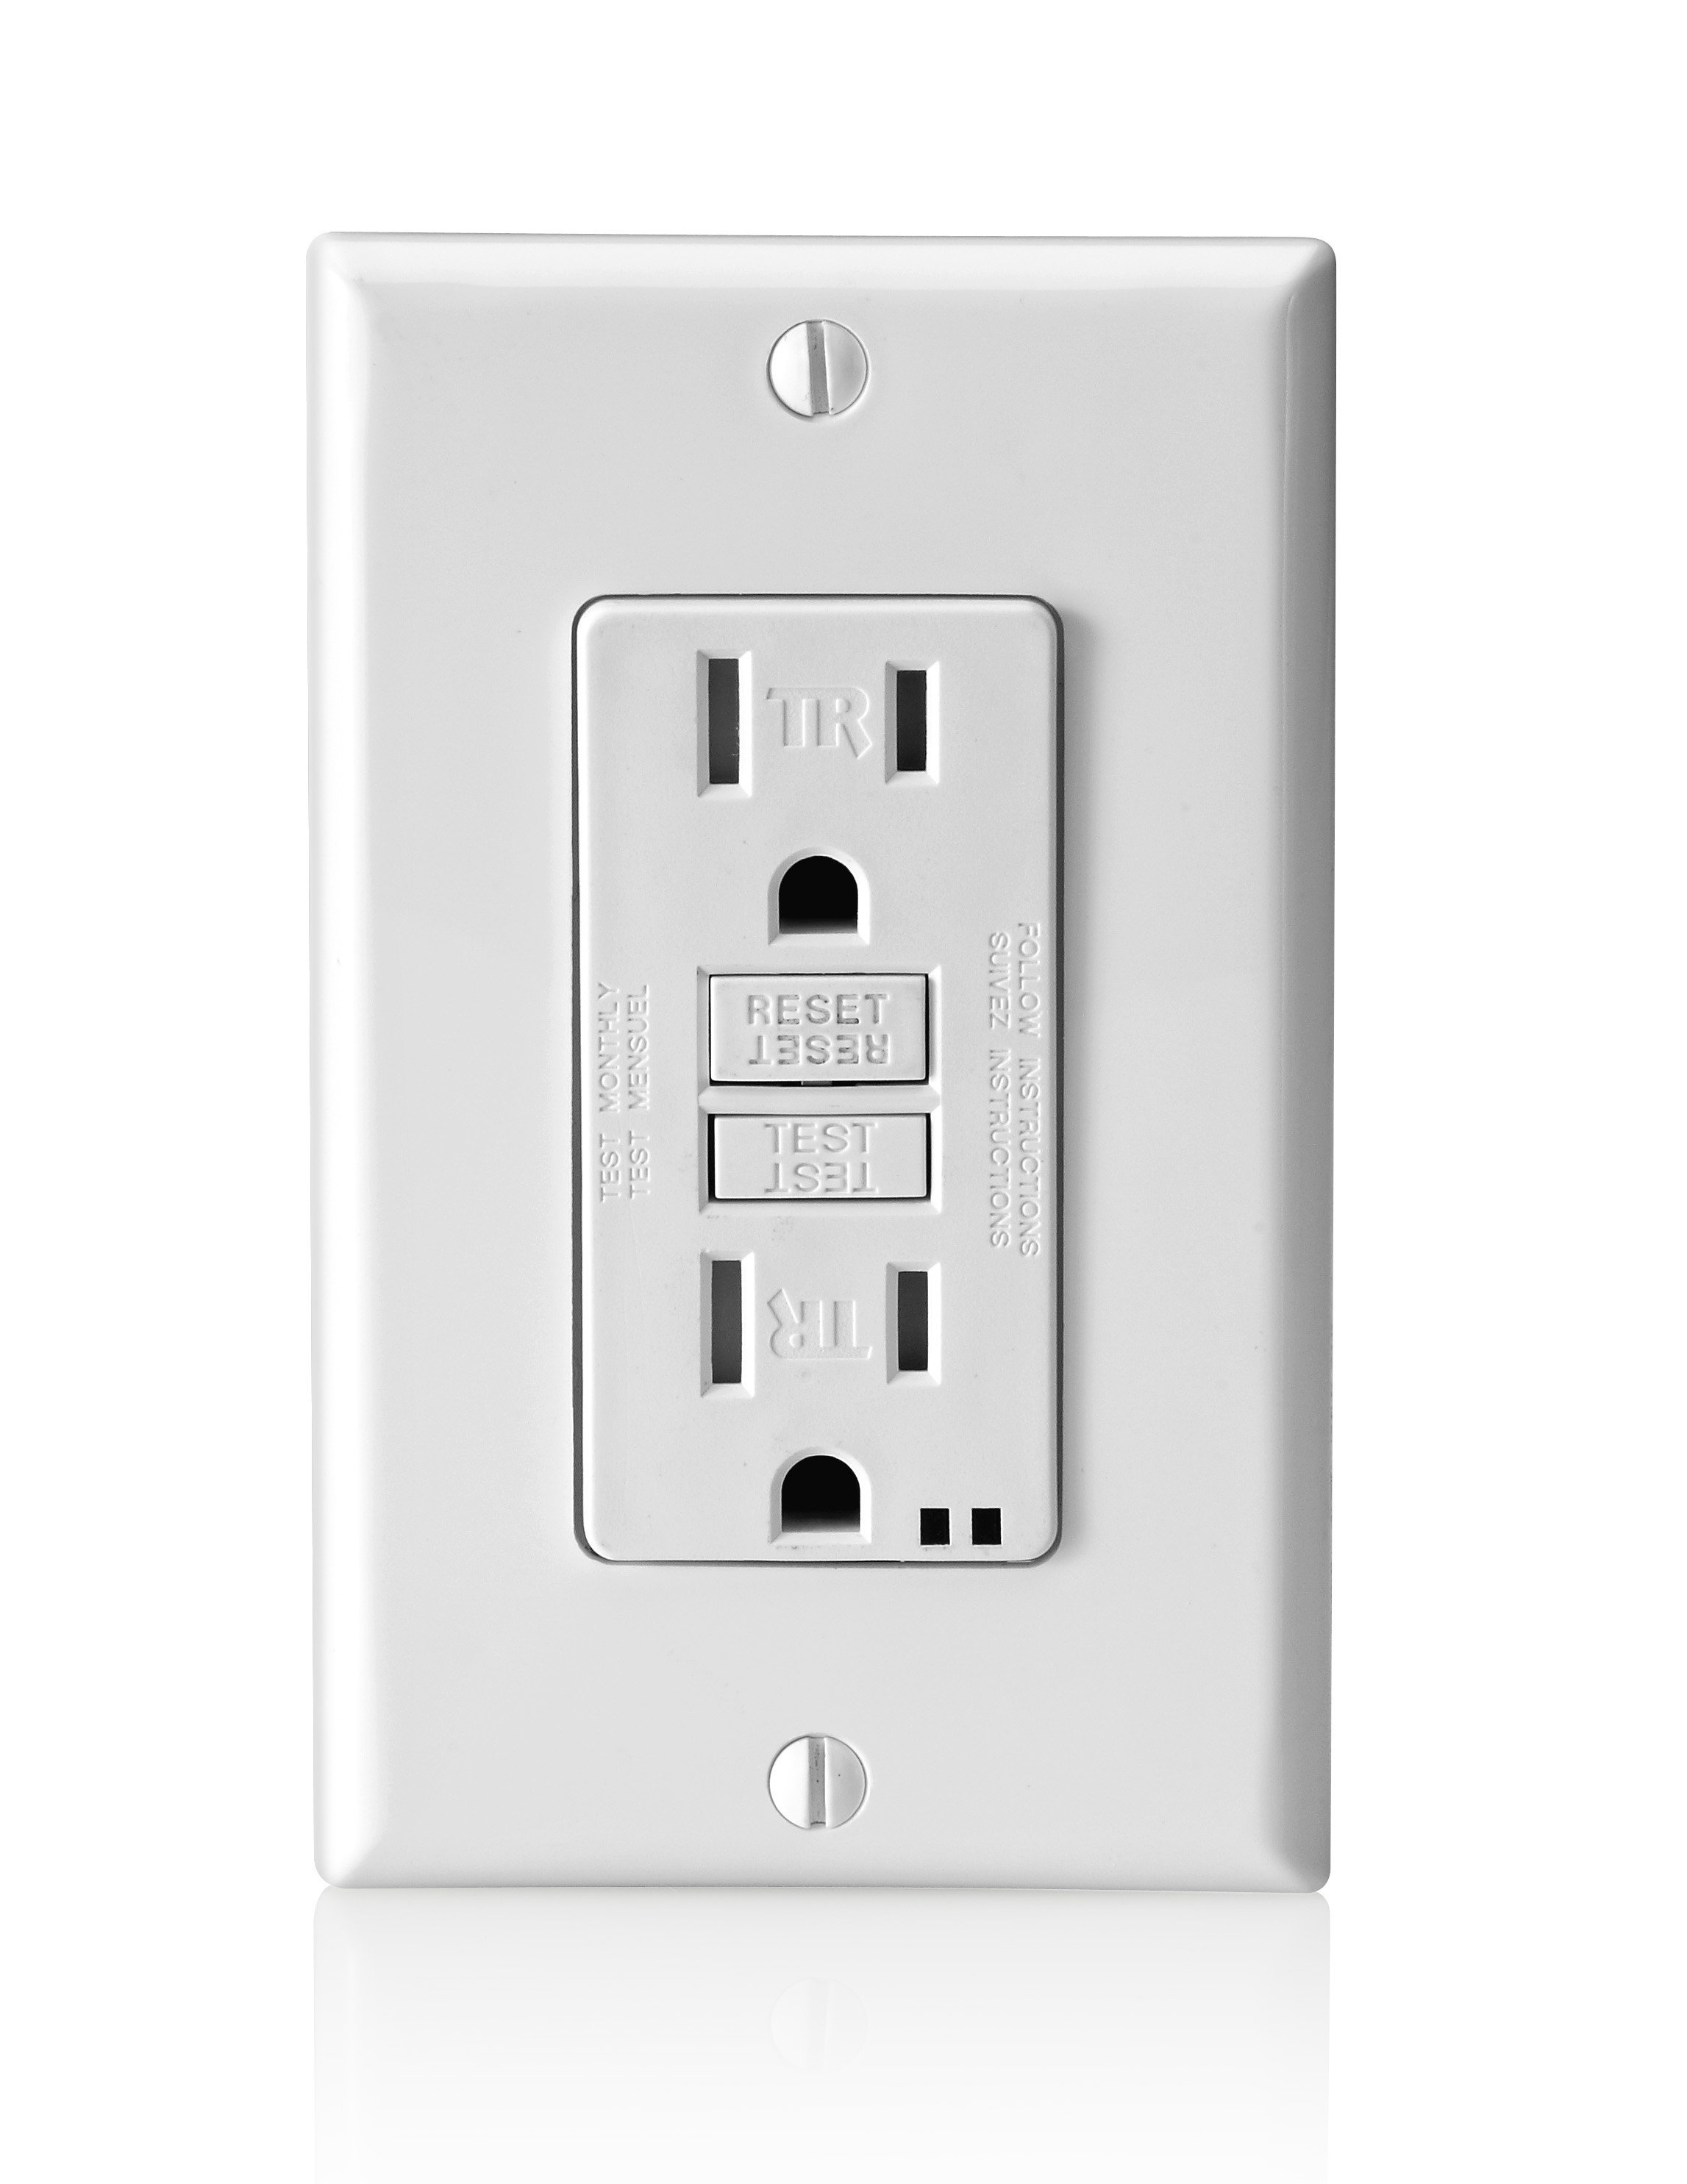 Free photo: Electric Outlet Exposed - Outlet, Power, Receptacle ...